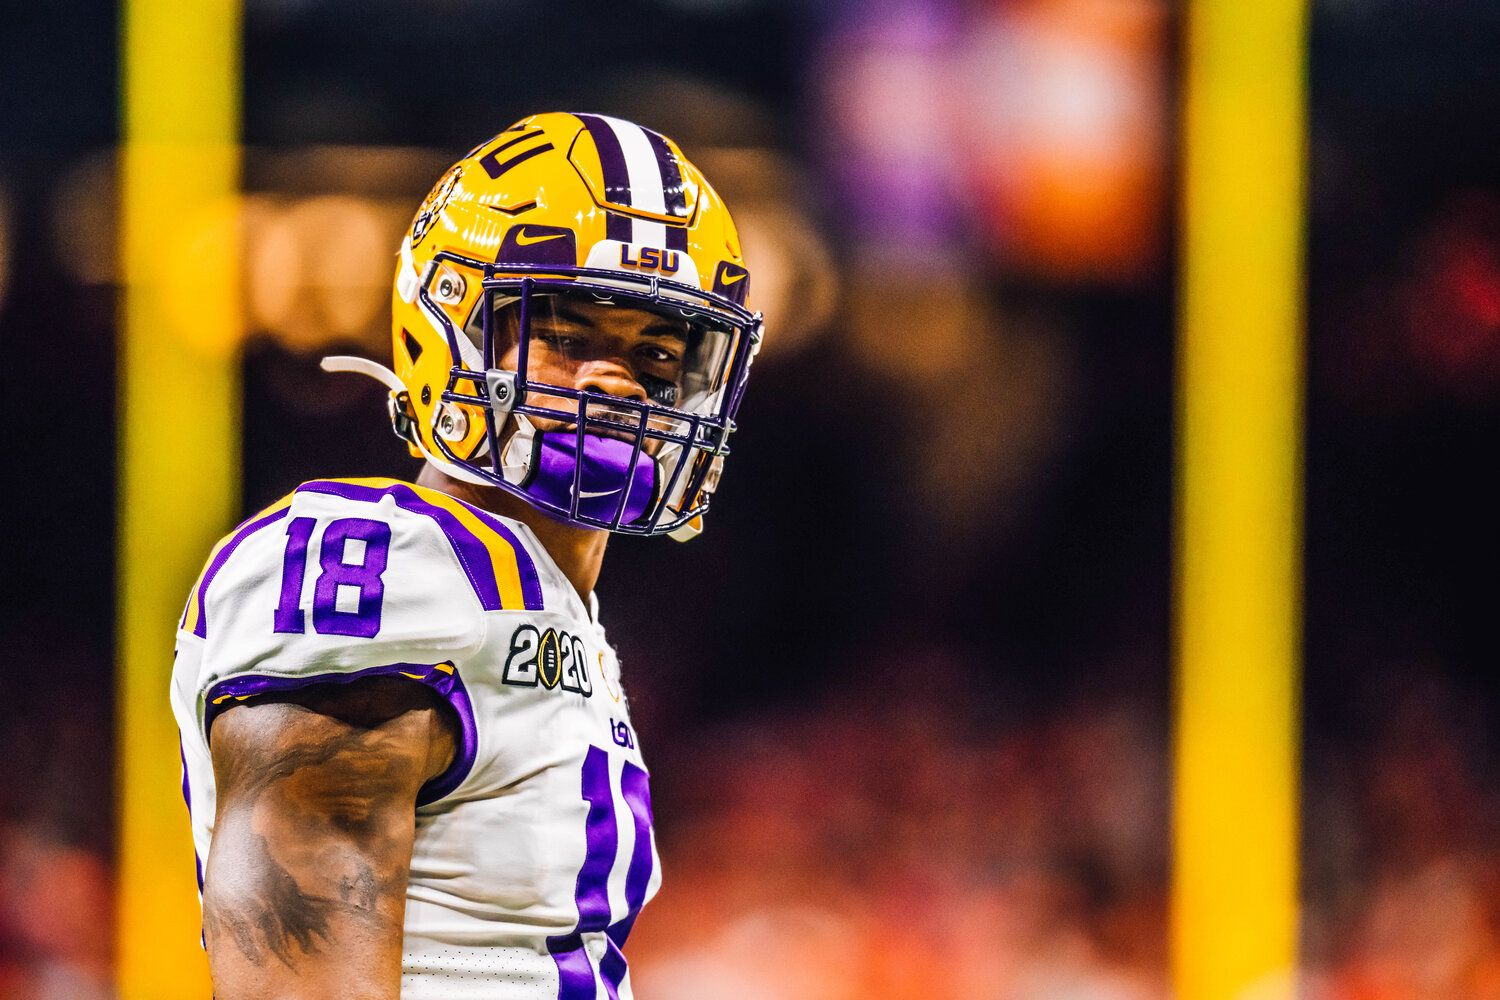 Lsu Football Undefeated Champions 2019 Sports Photography Jordan Hefler In 2020 Lsu Football Football Sports Photography